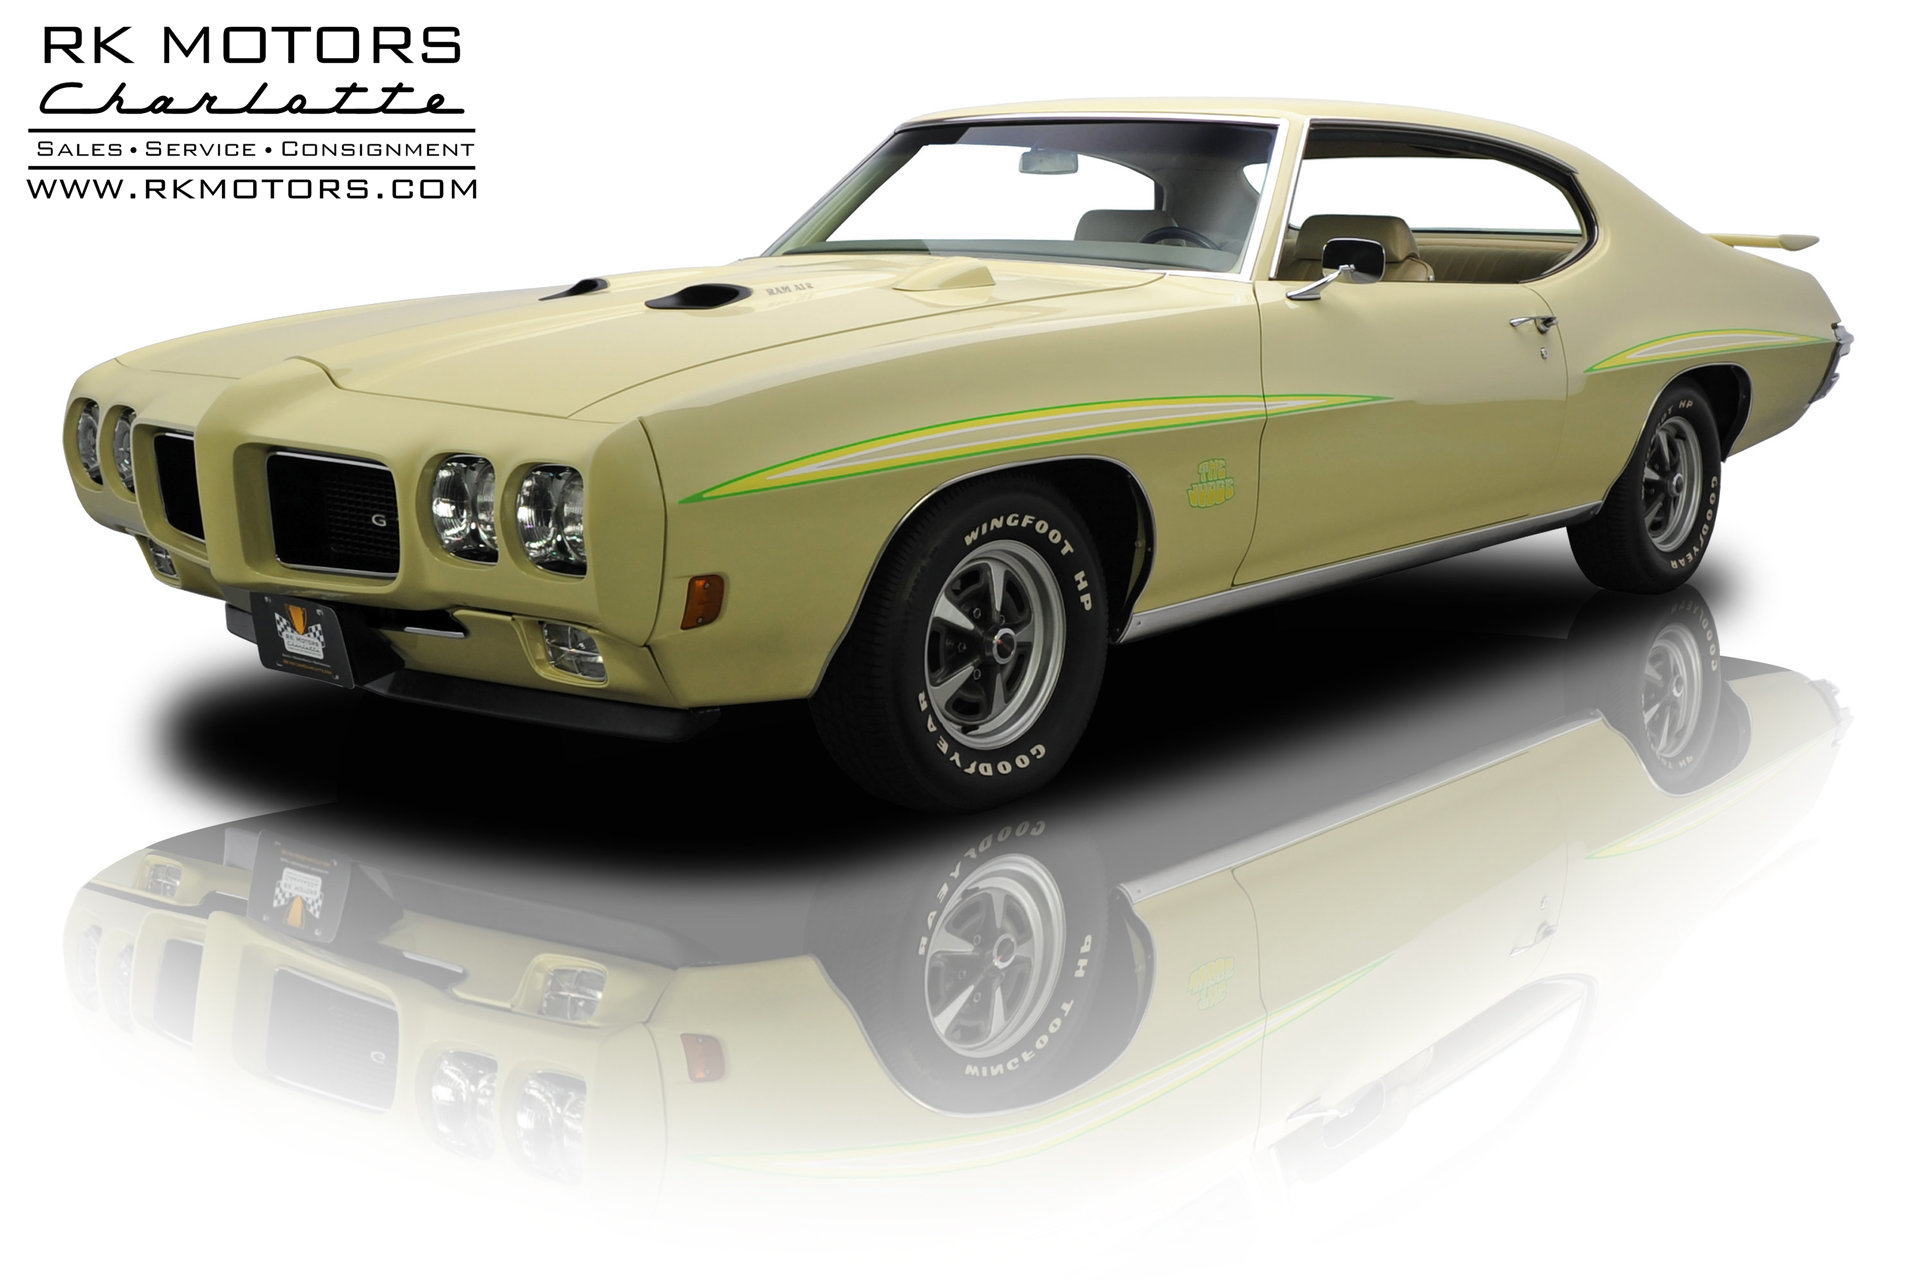 133252 1970 Pontiac Gto Rk Motors Classic Cars For Sale Wiring Schematic